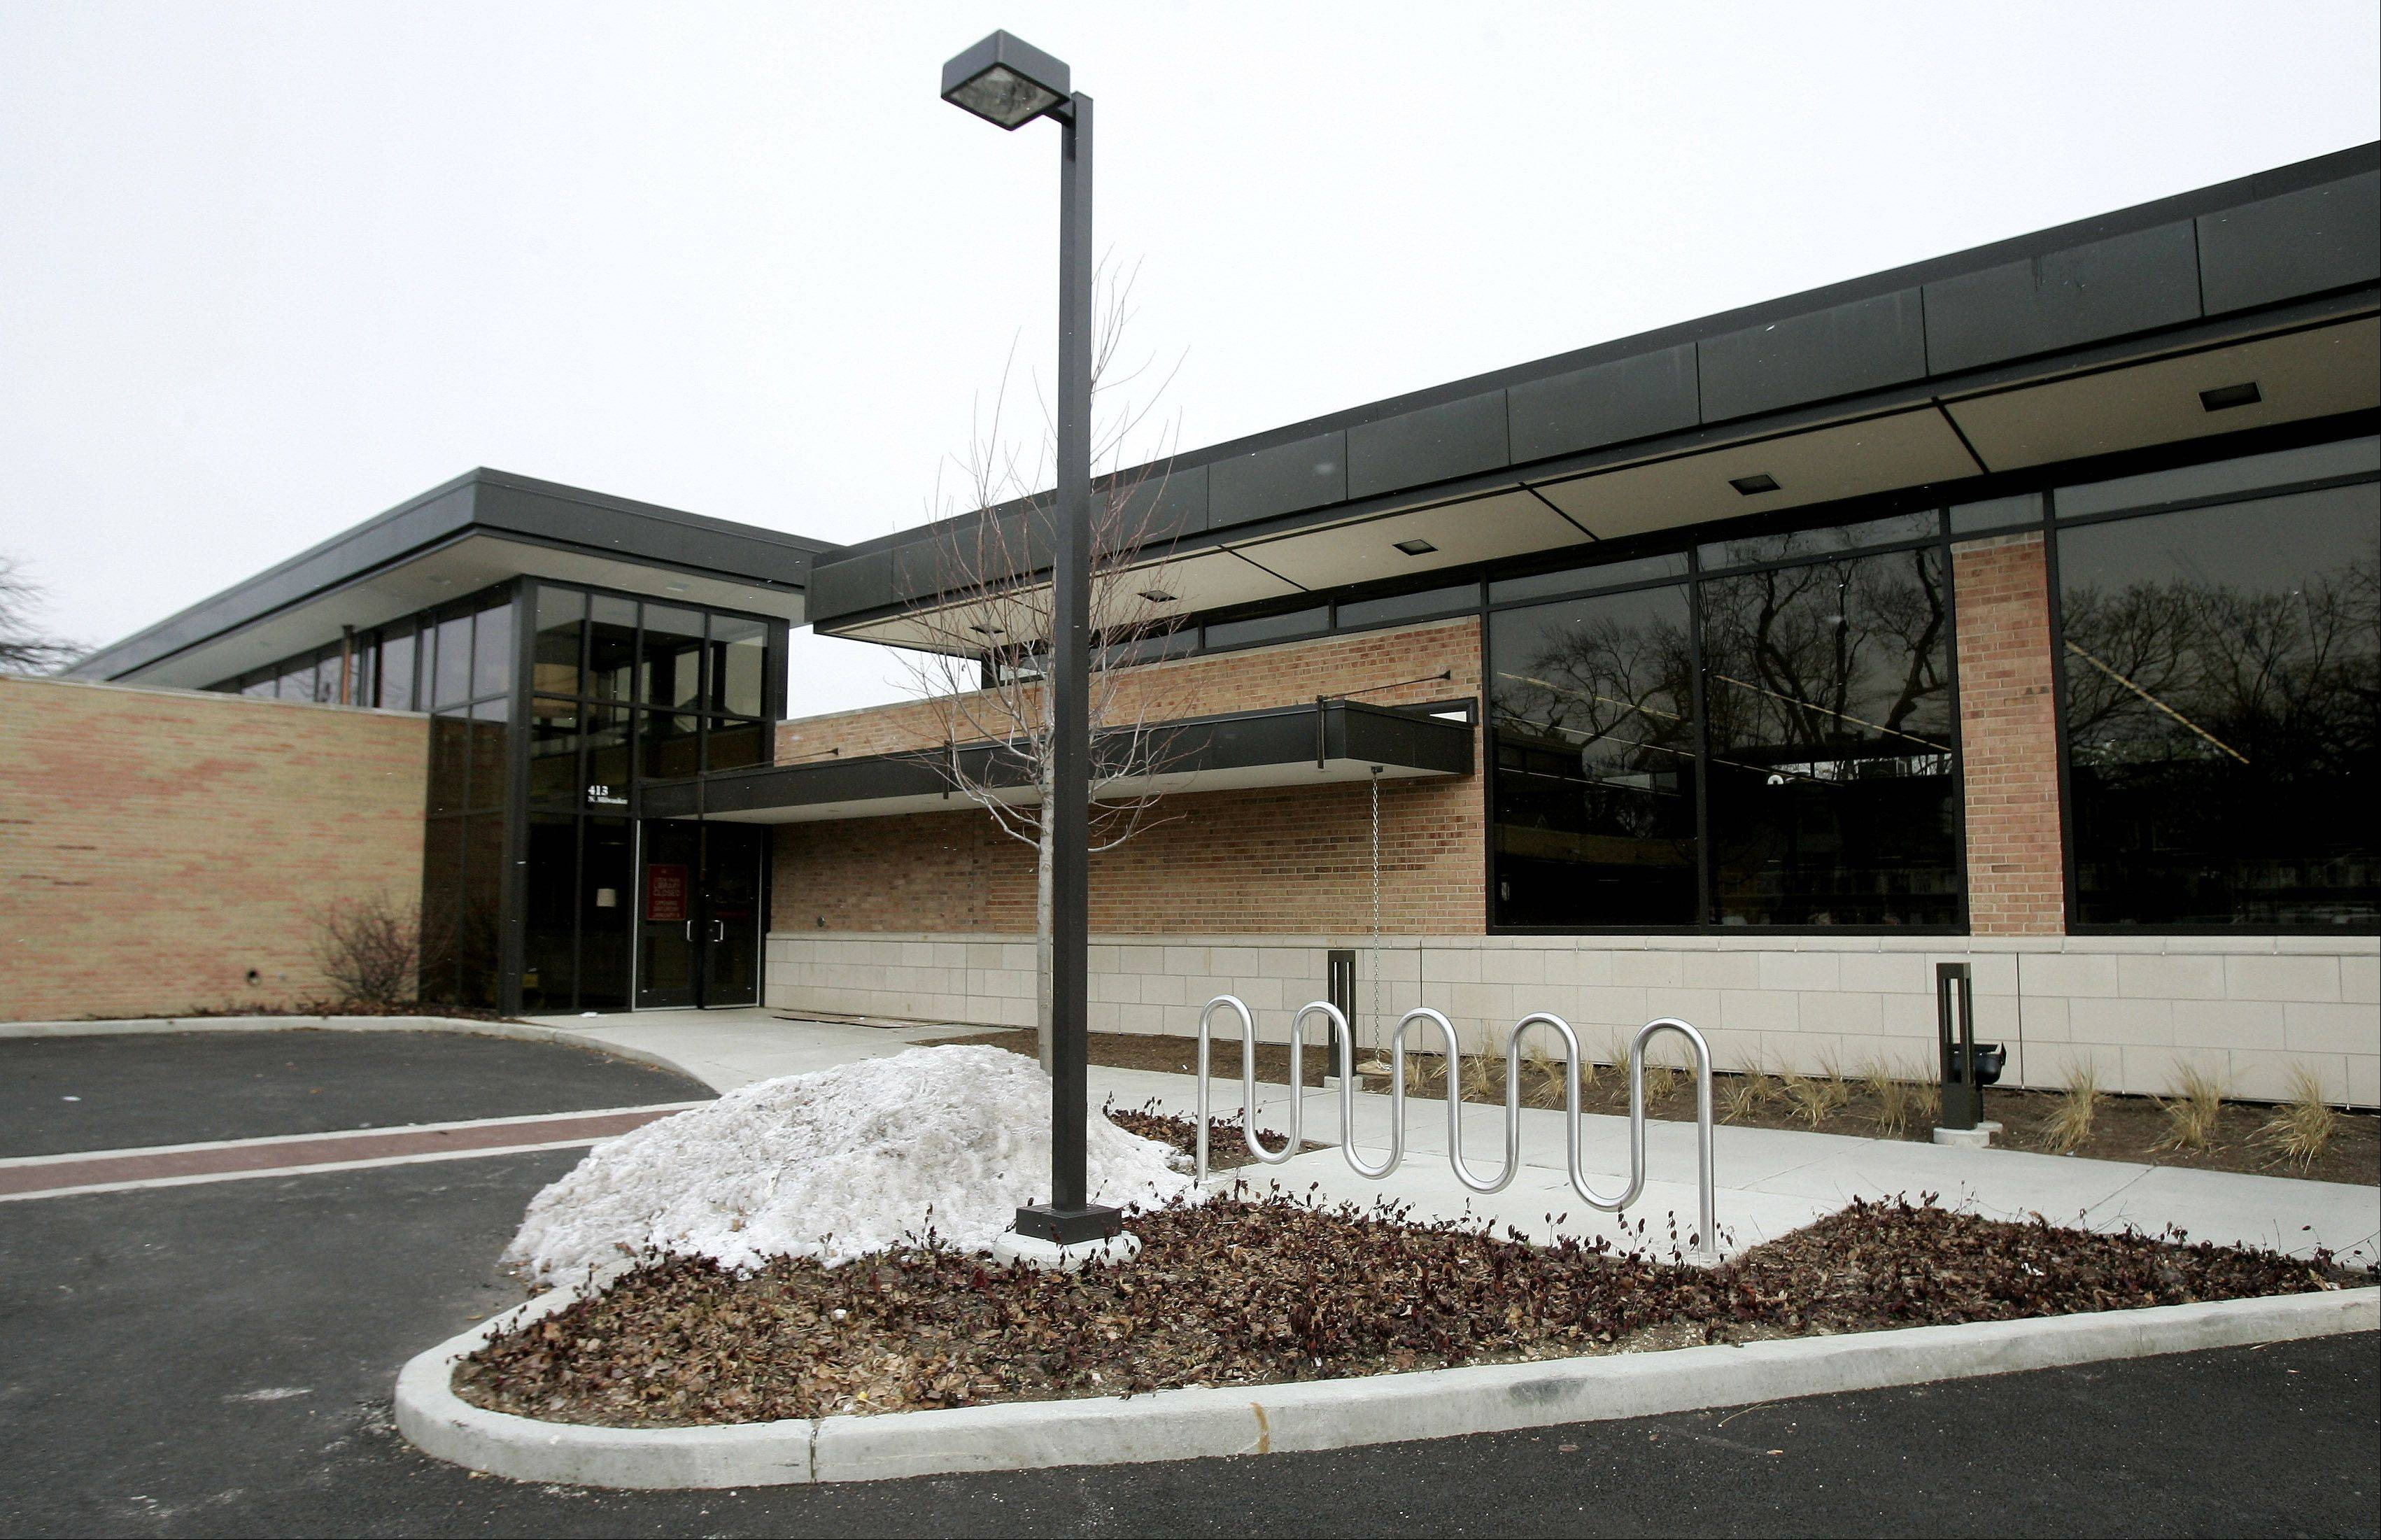 The Cook Park Library in Libertyville could soon be equipped with panic buttons that would alert police to emergencies.